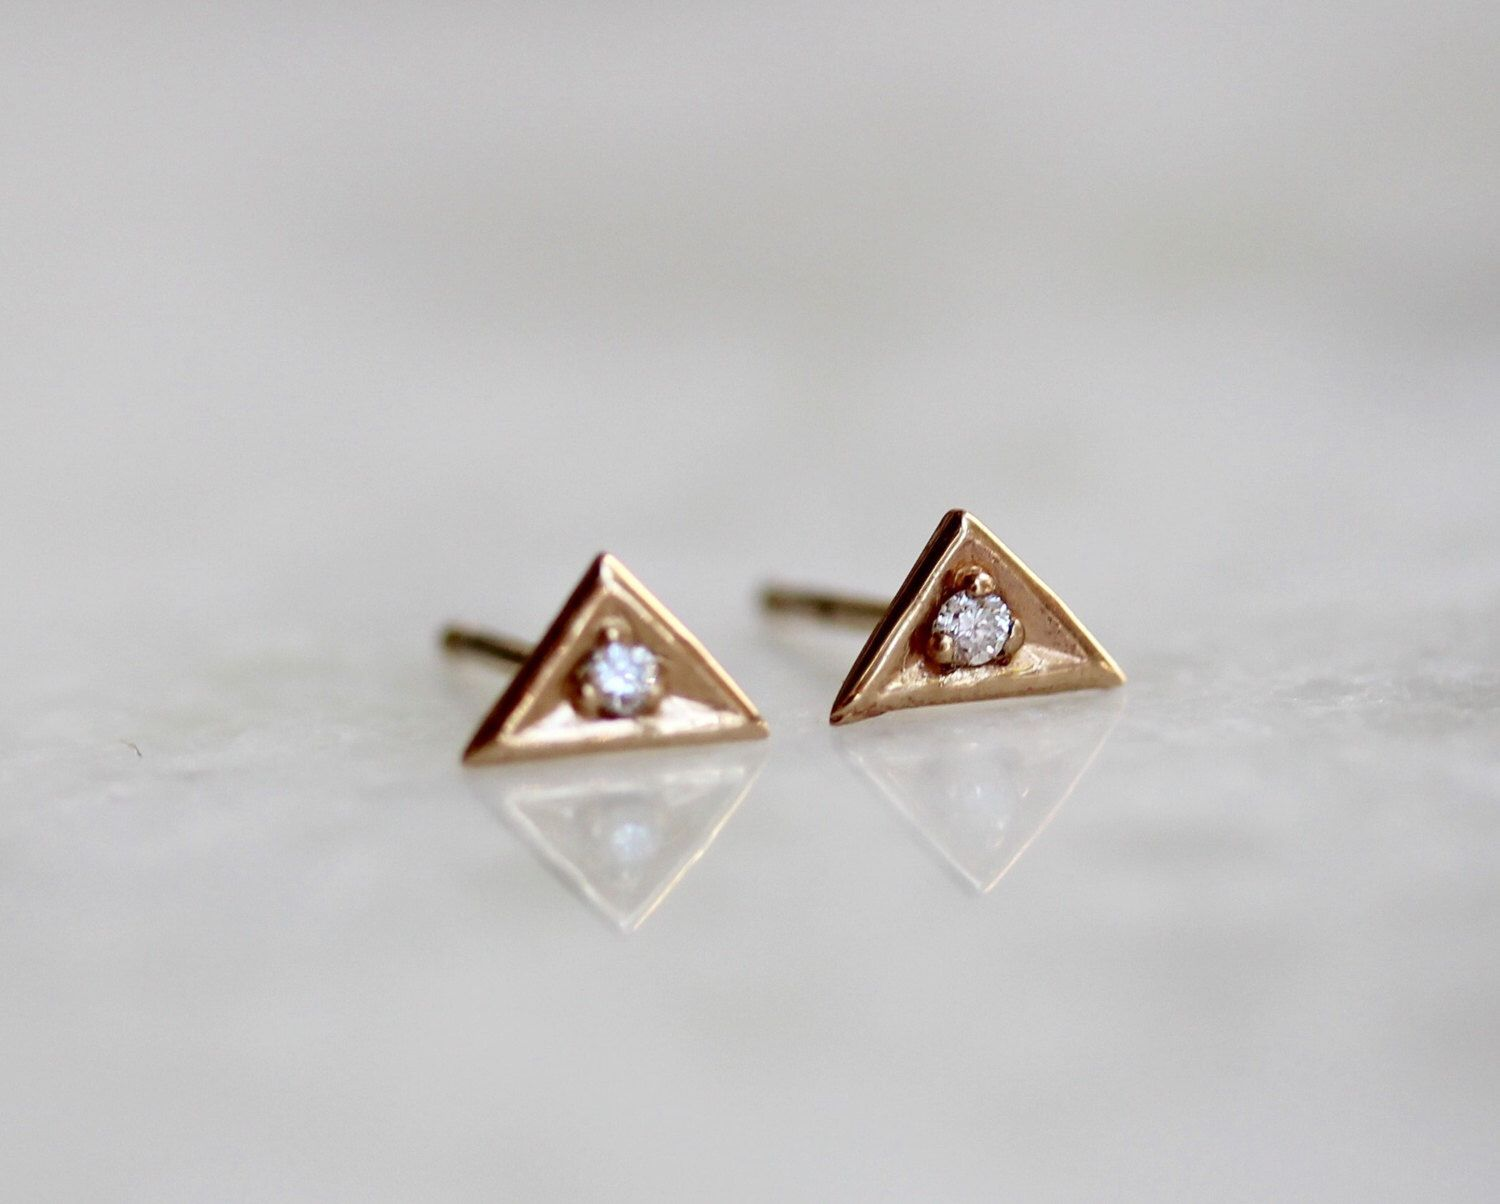 14k Diamond Triangle Stud Earrinys Solid Gold Earring Tiny Studs